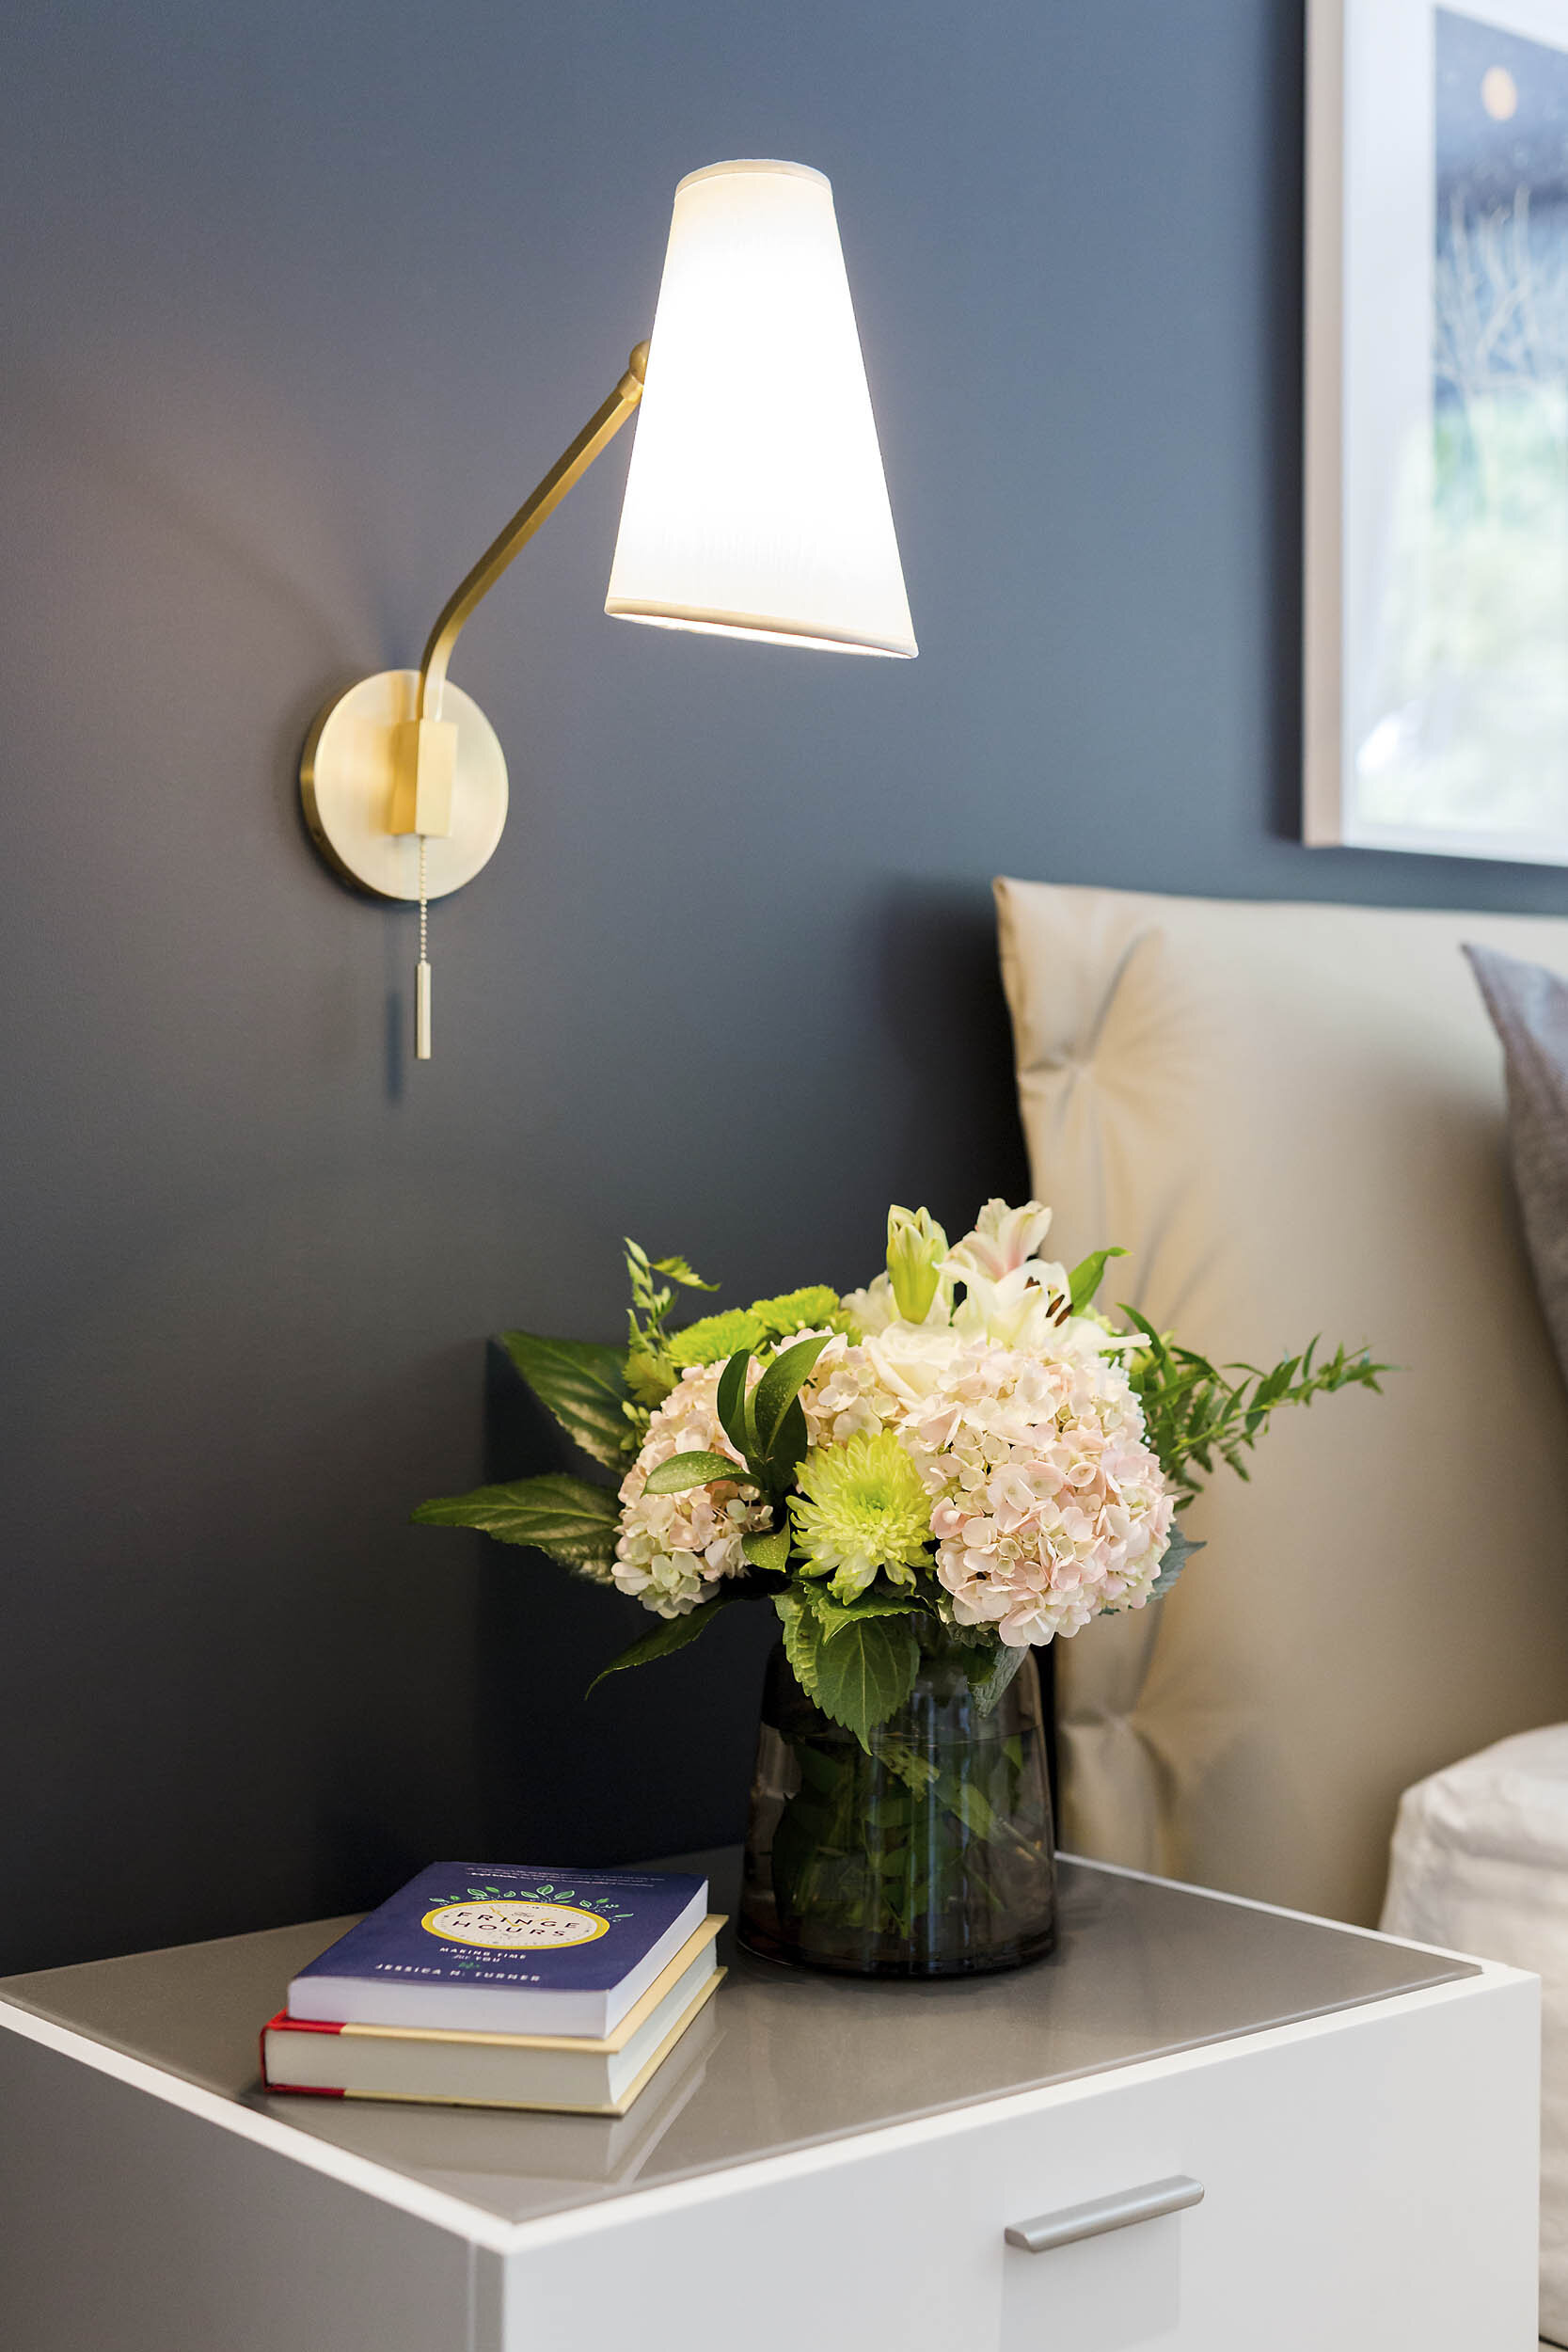 Bedside Table Interior Photography by Worker Bee Supply